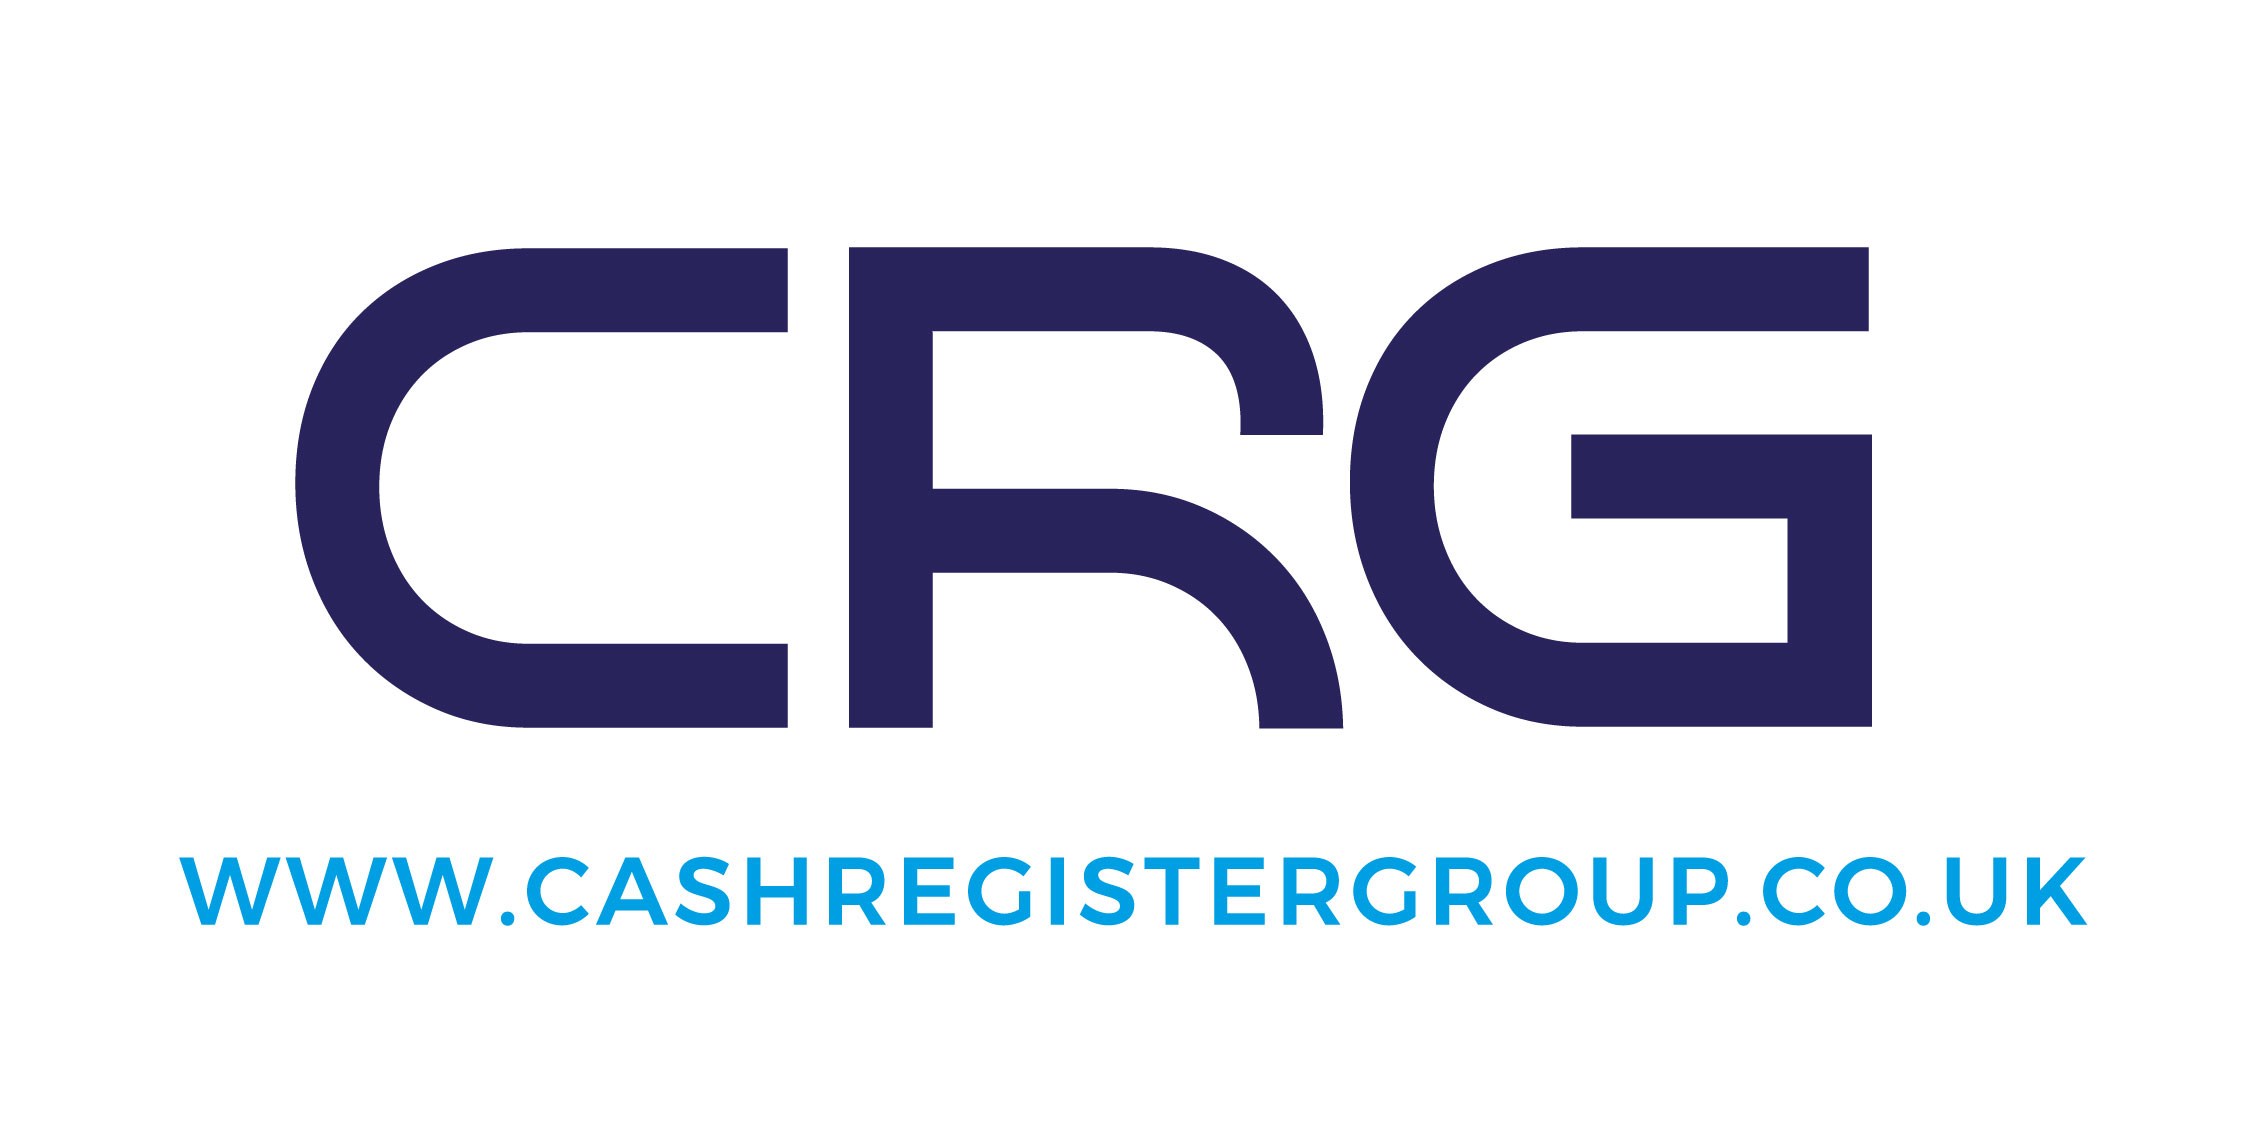 Read Cash Register Group Reviews